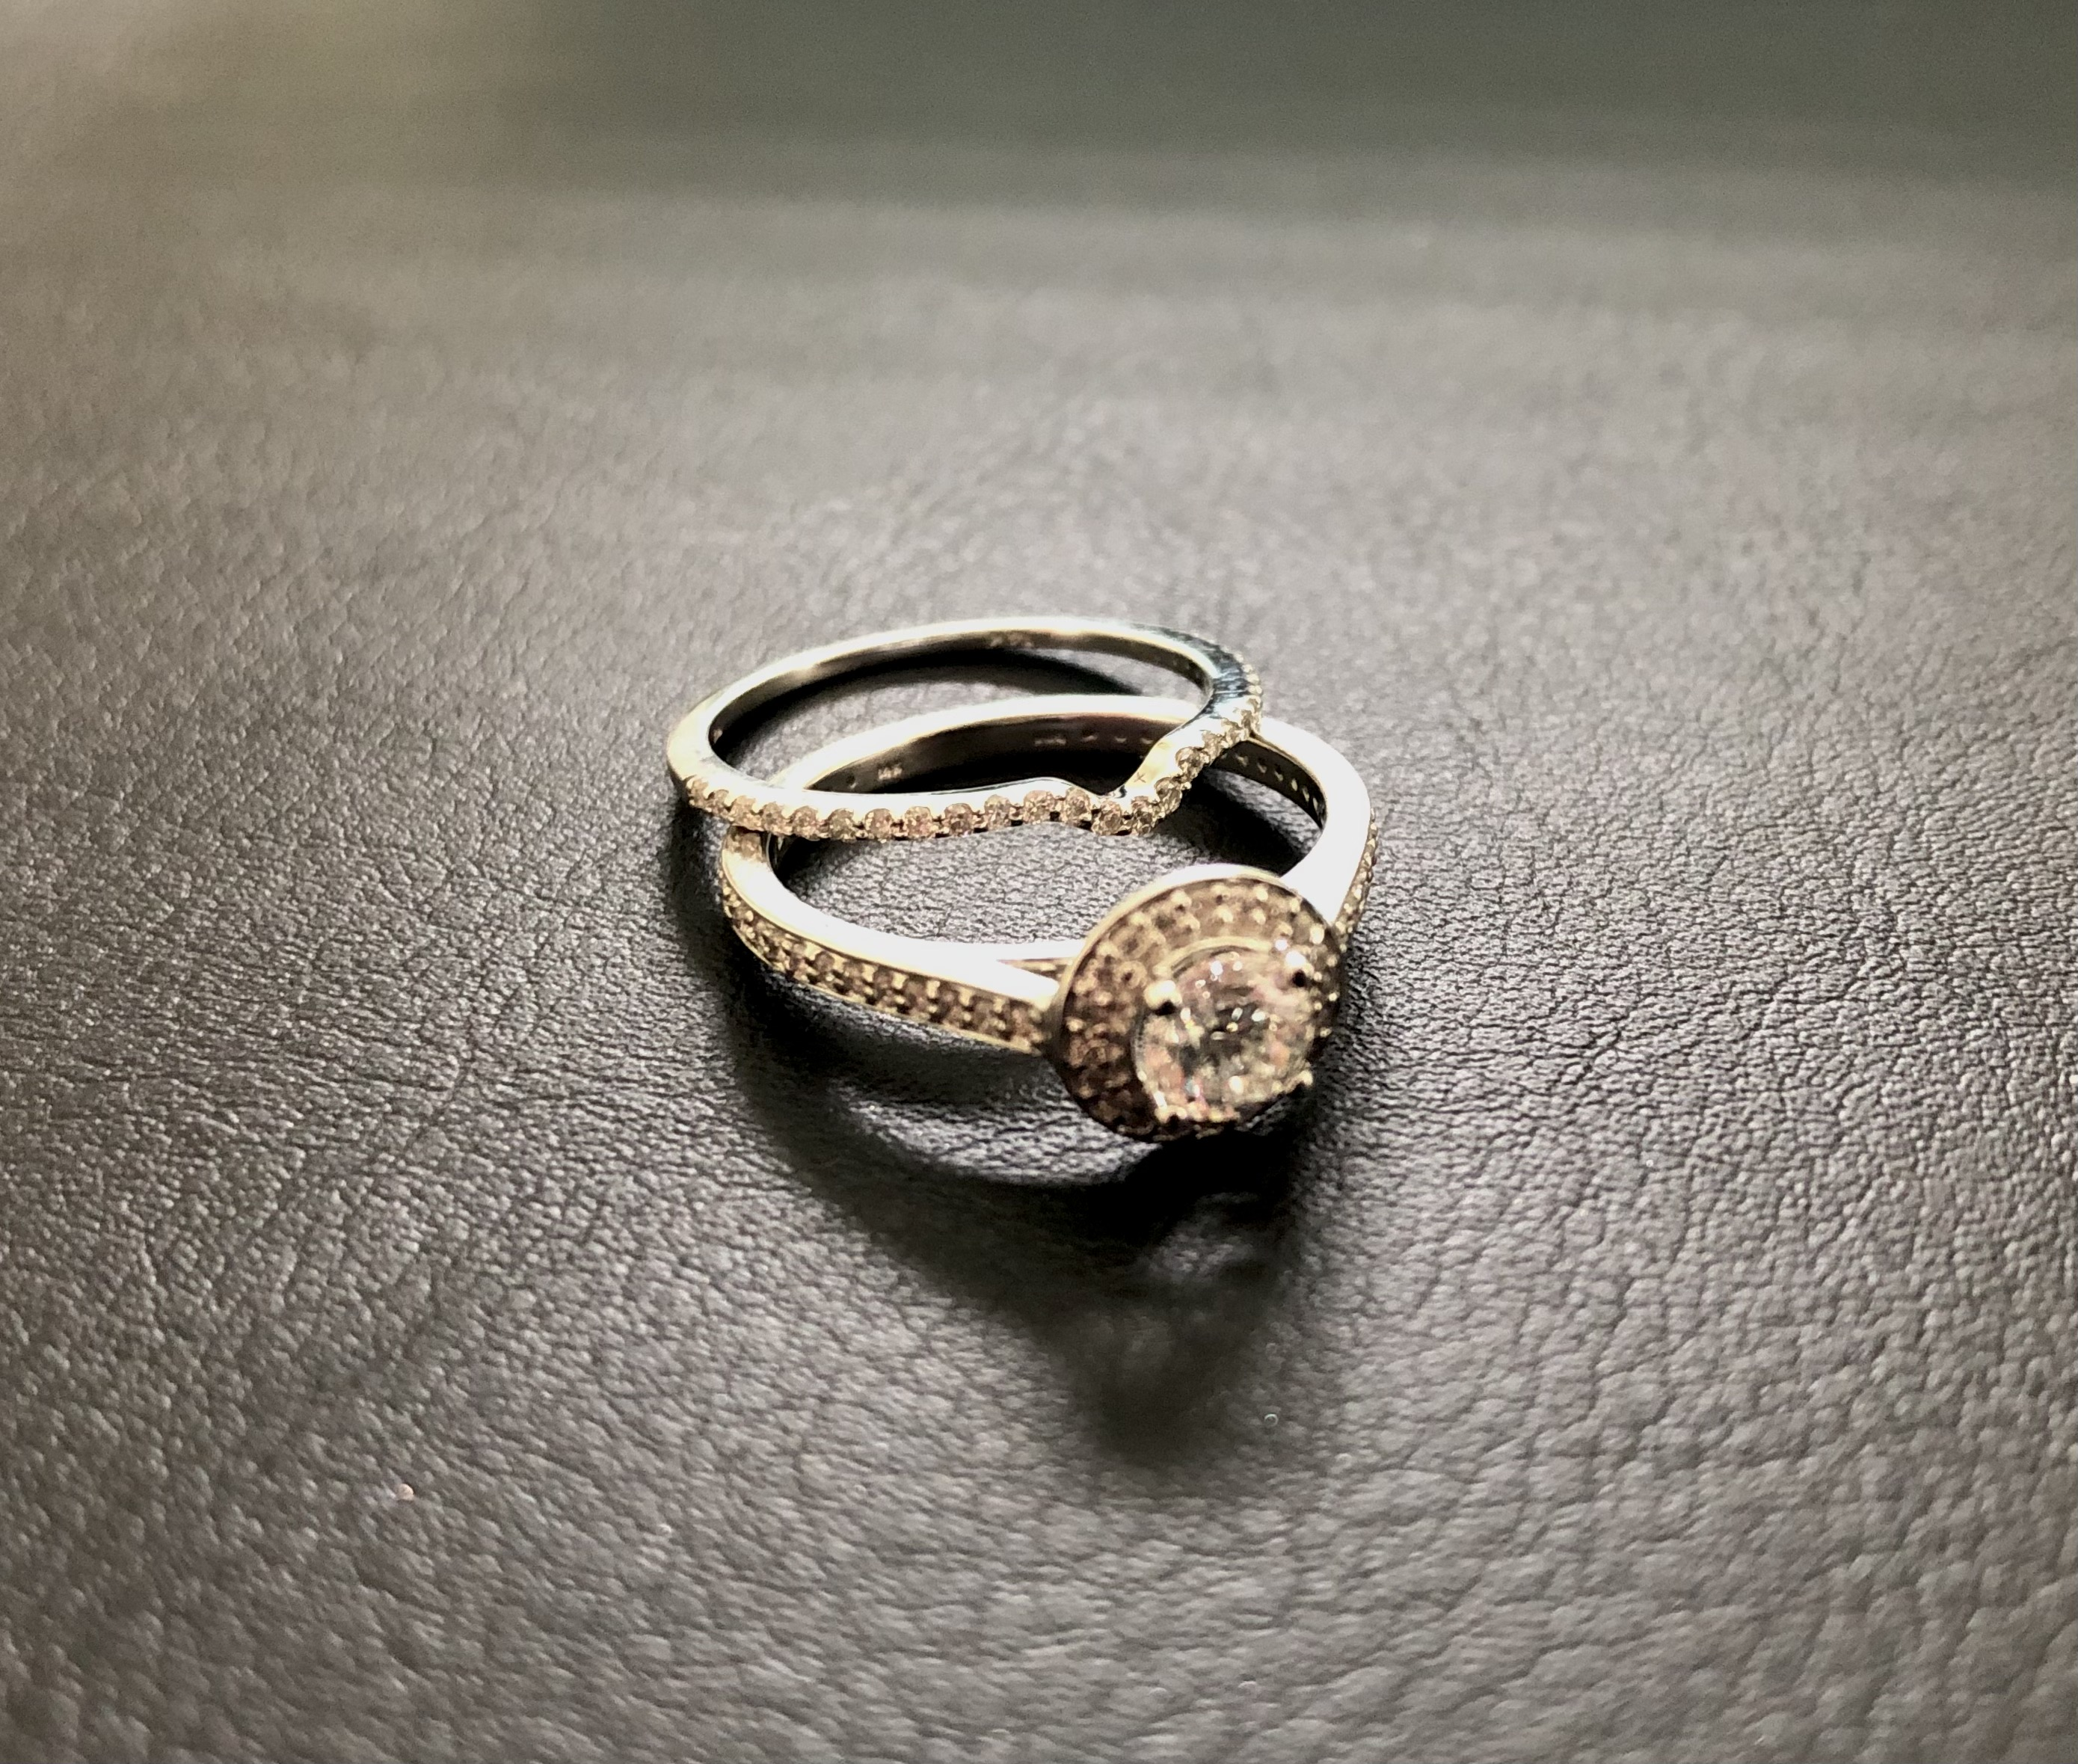 New Engagement Ring!